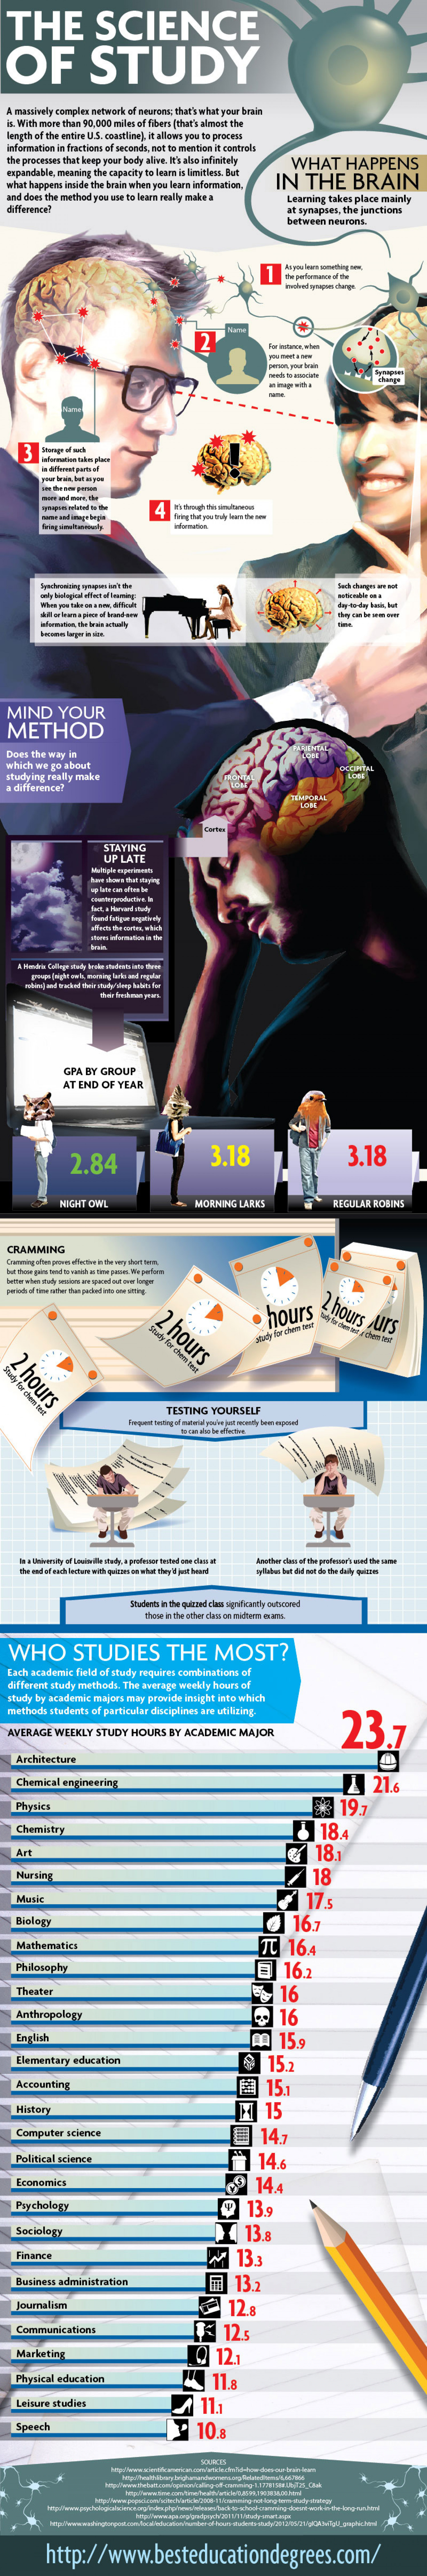 The Science of Study Infographic